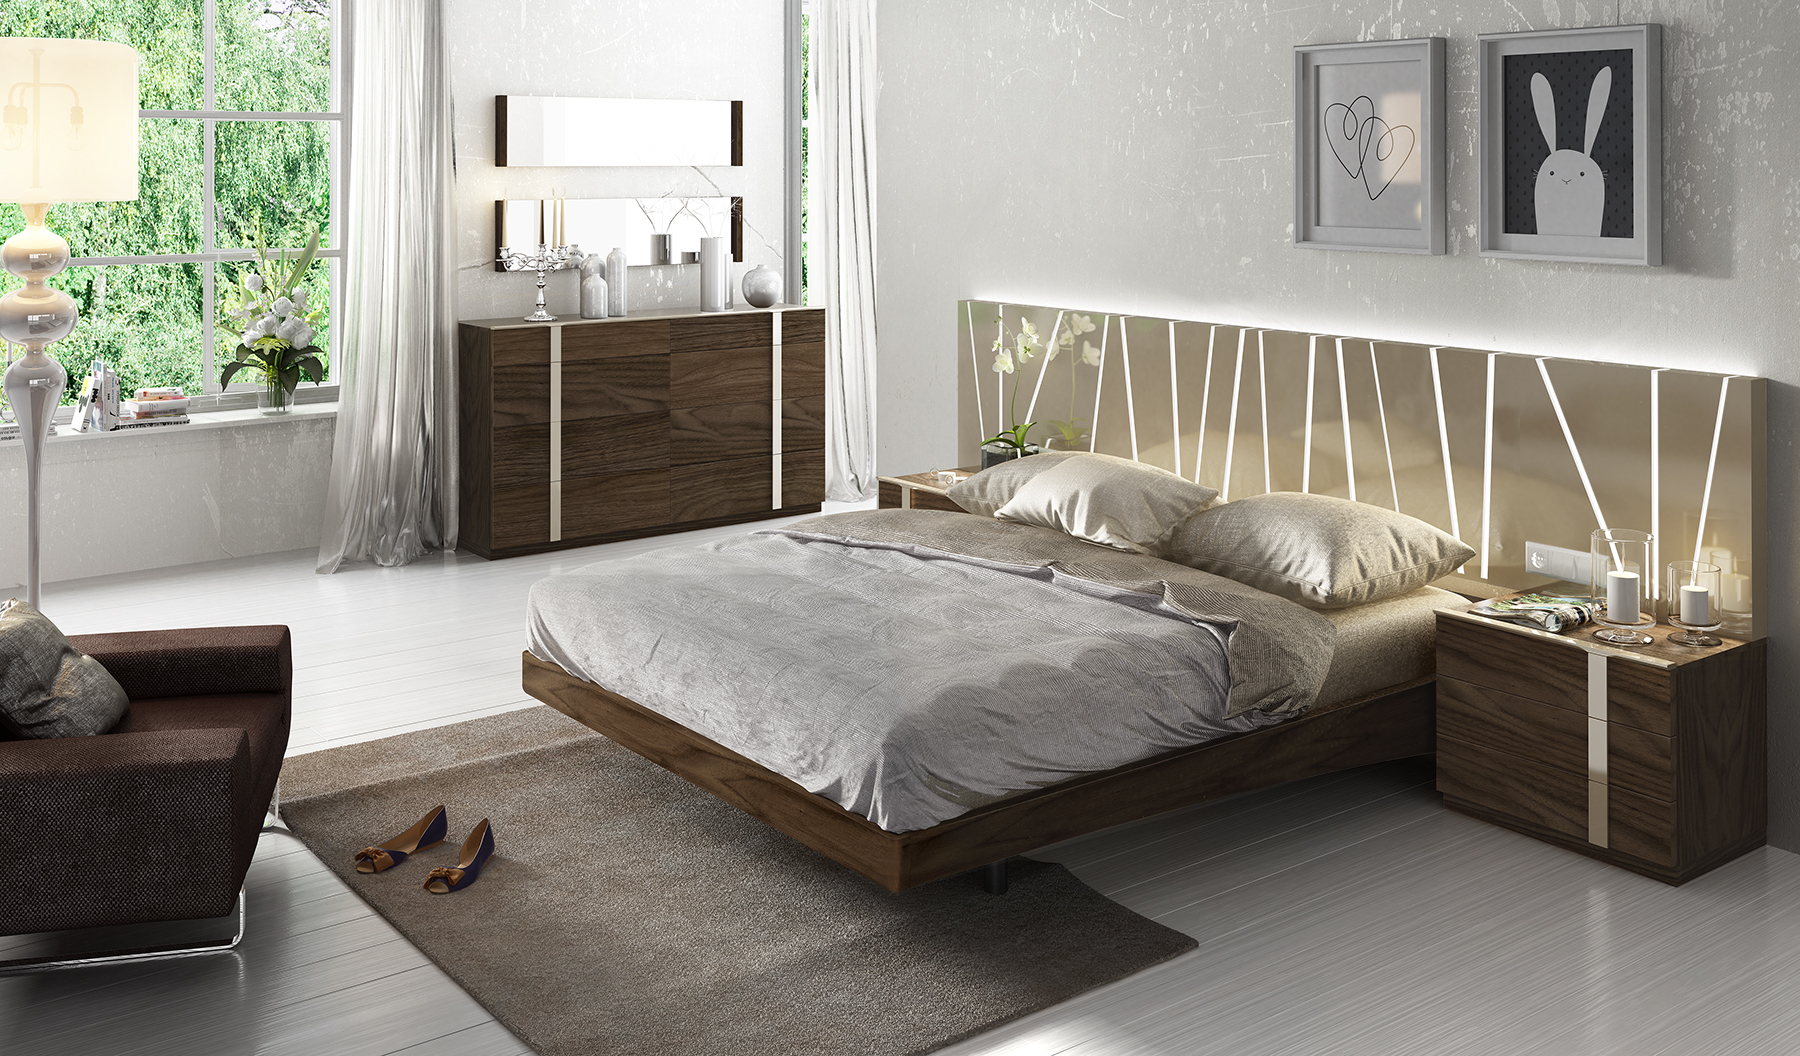 Exclusive Wood Luxury Bedroom Set feat Light